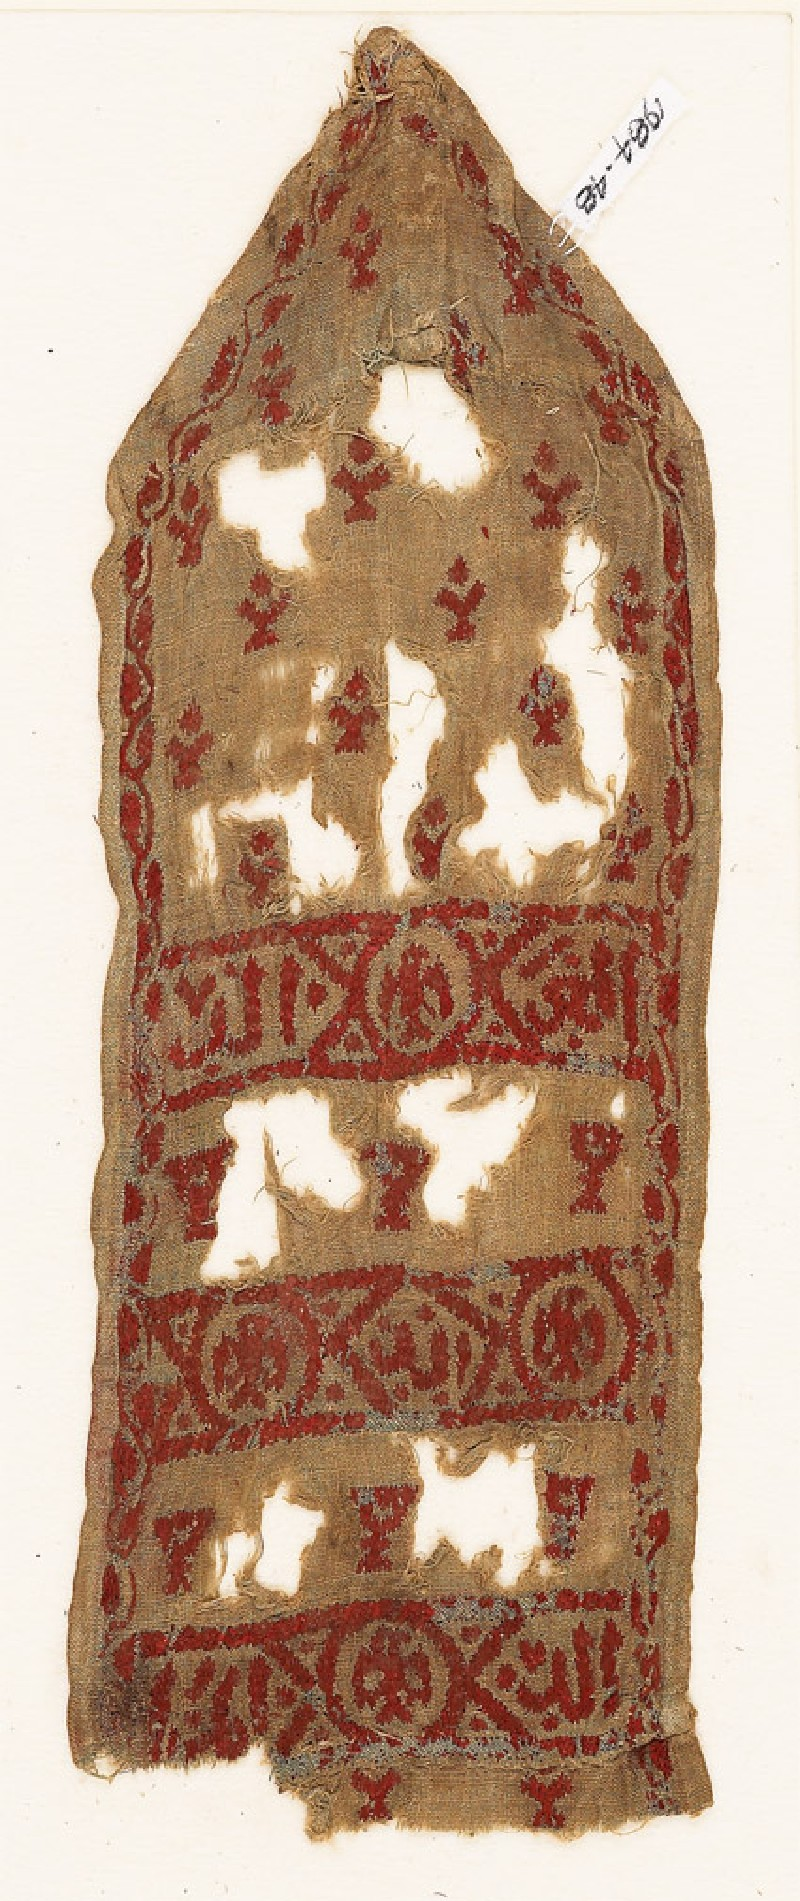 Tab with eagle blazons, chalices, and inscription, probably from an awning (EA1984.48, front           )